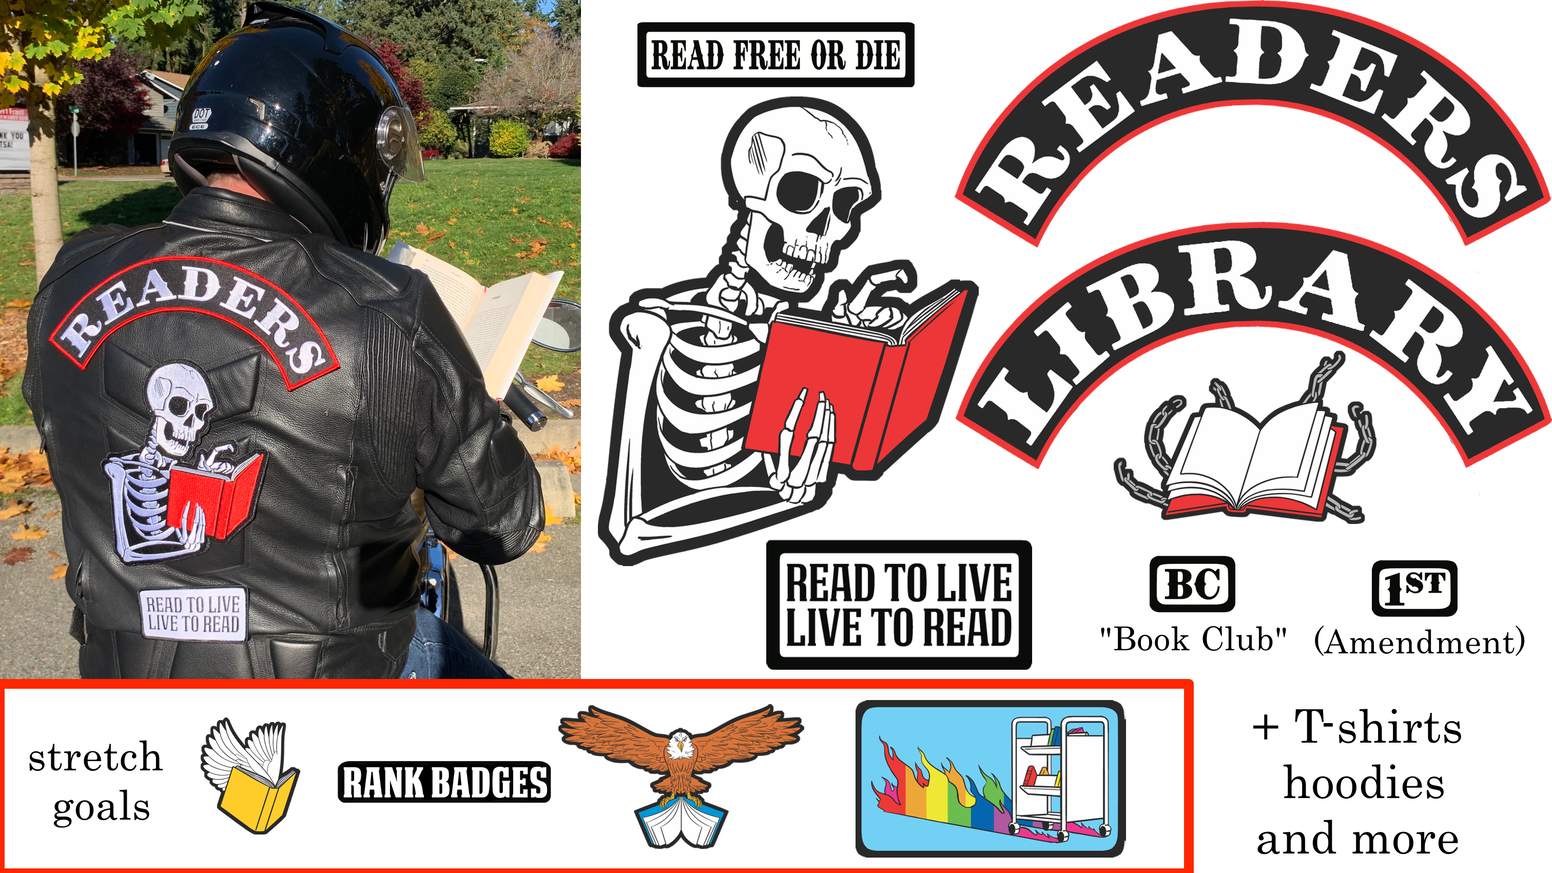 Do you admire biker jackets but prefer reading to the open road? These patches from the Library Comic team are for you.